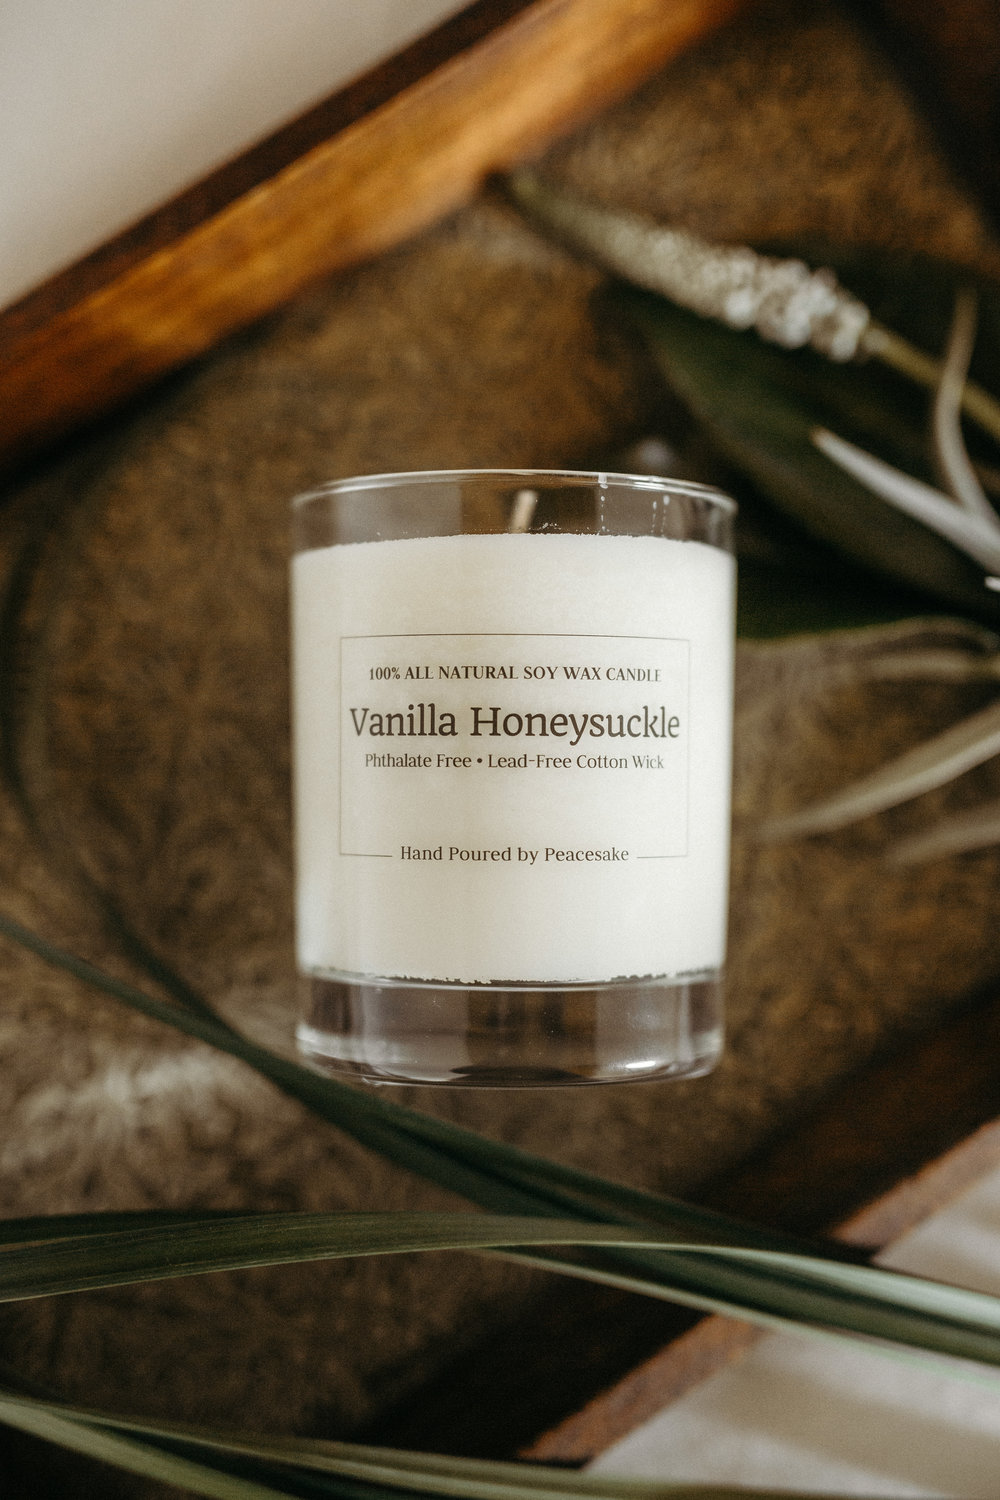 peacesake-all-natural-soy-wax-cotton-wick-vegan-candle-phthalate-free-vanilla-honeysuckle